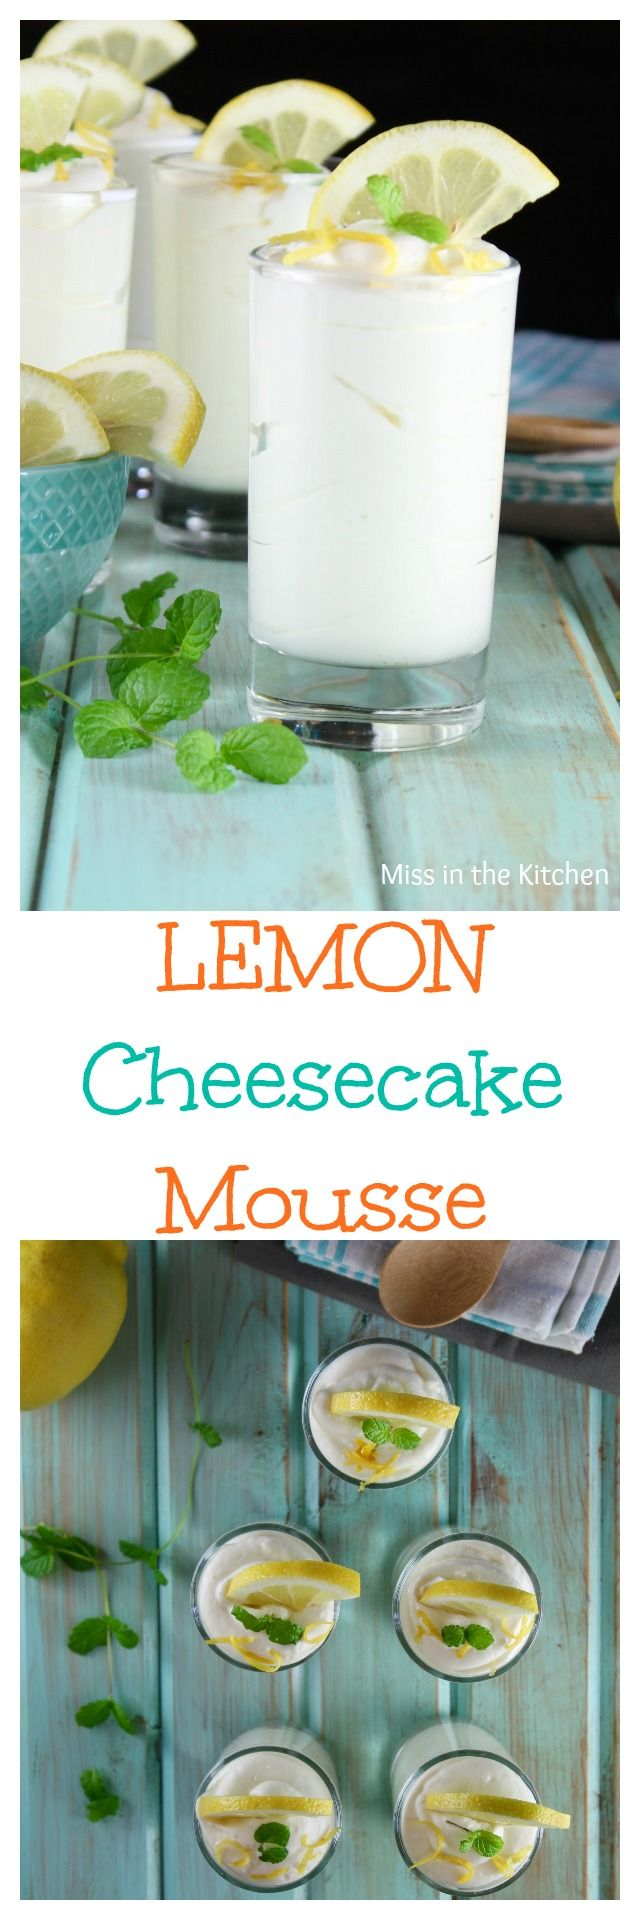 Lemon Cheesecake Mousse Recipe Quick And Easy No Bake Cheesecake Dessert Recipe Found At Missinthekitchen